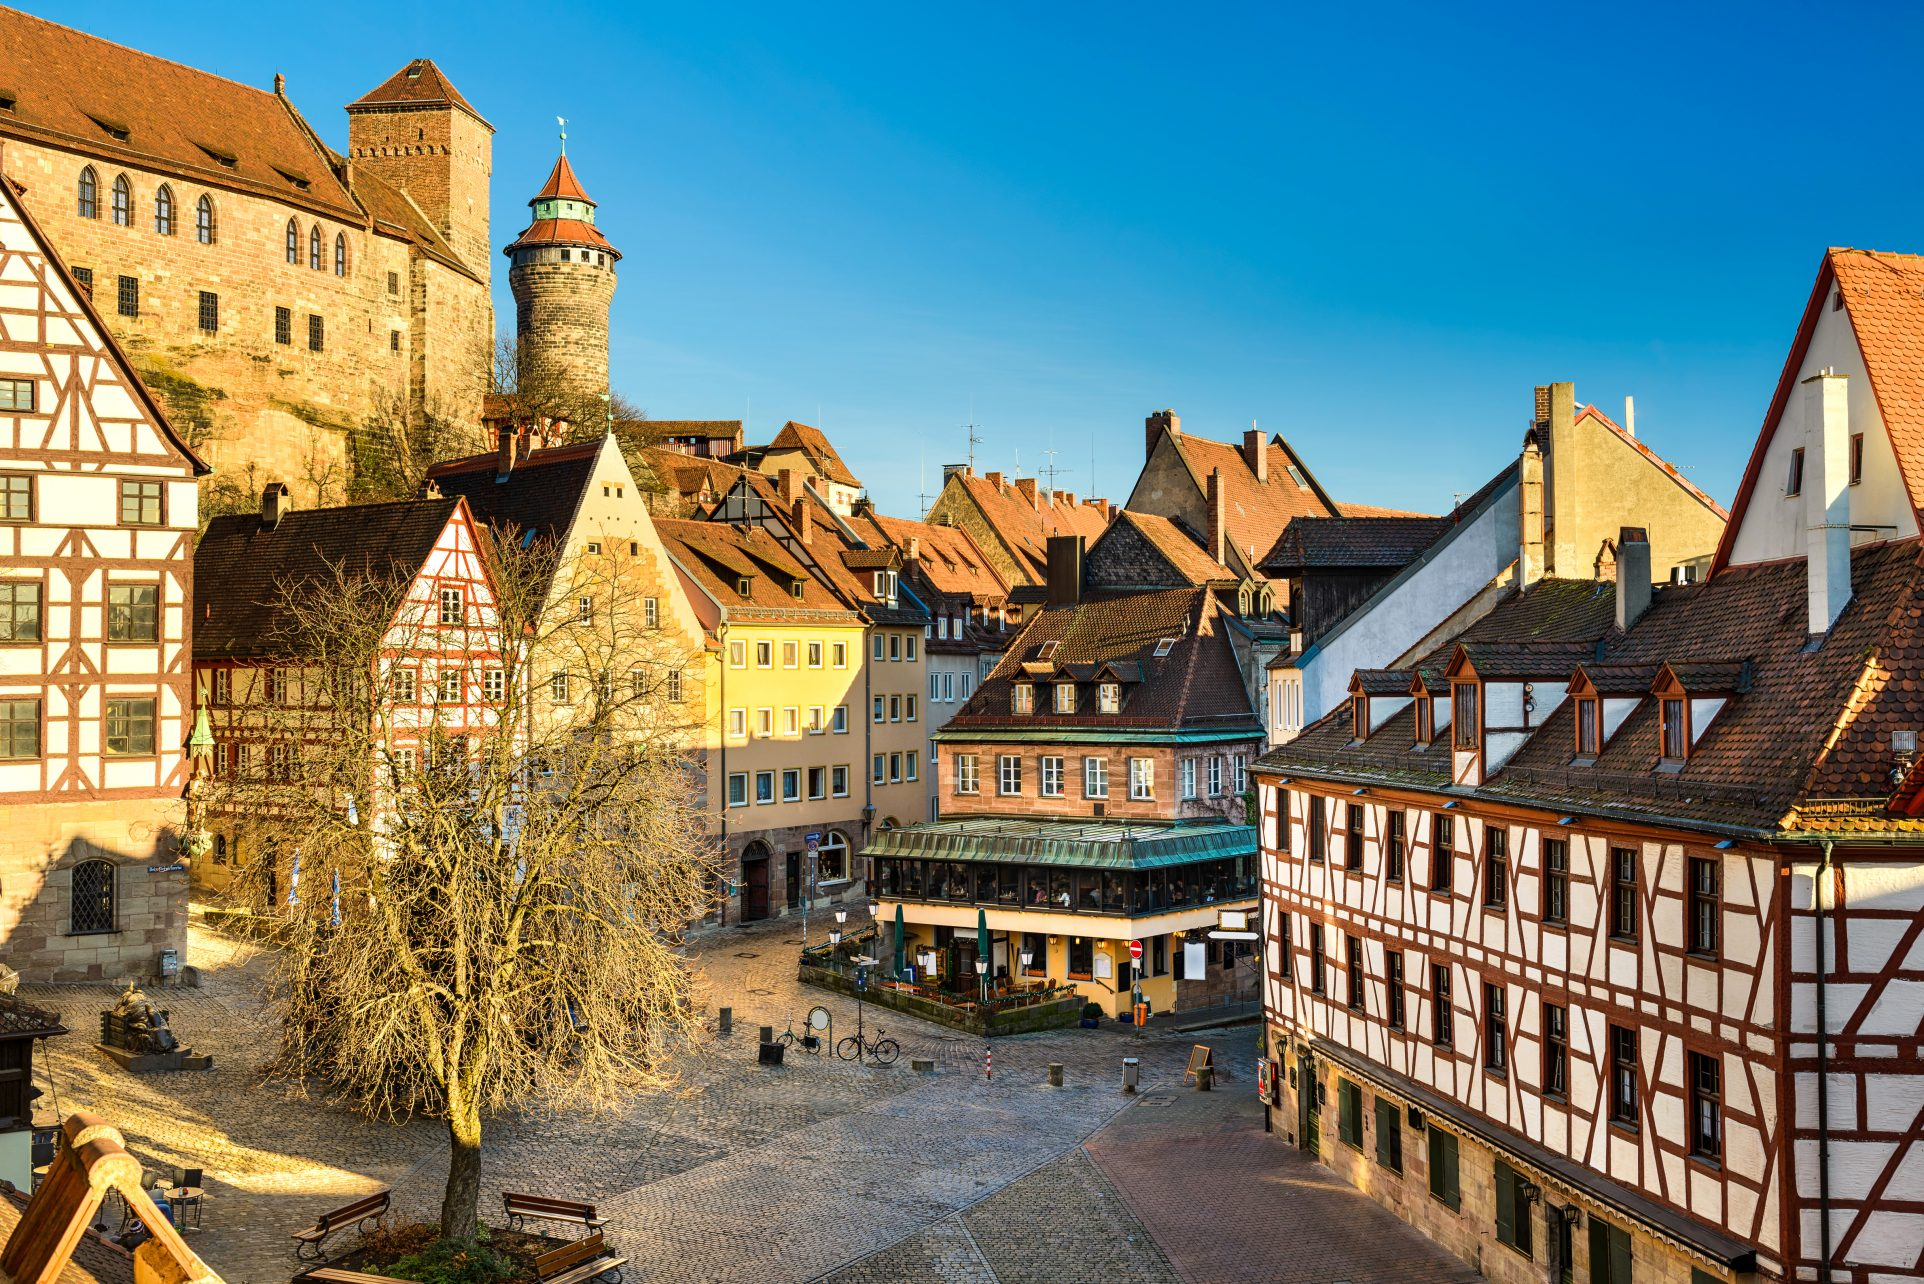 Nuremberg, Germany, Tour in Nuremberg, private trip, english speaking driver, fun with locals